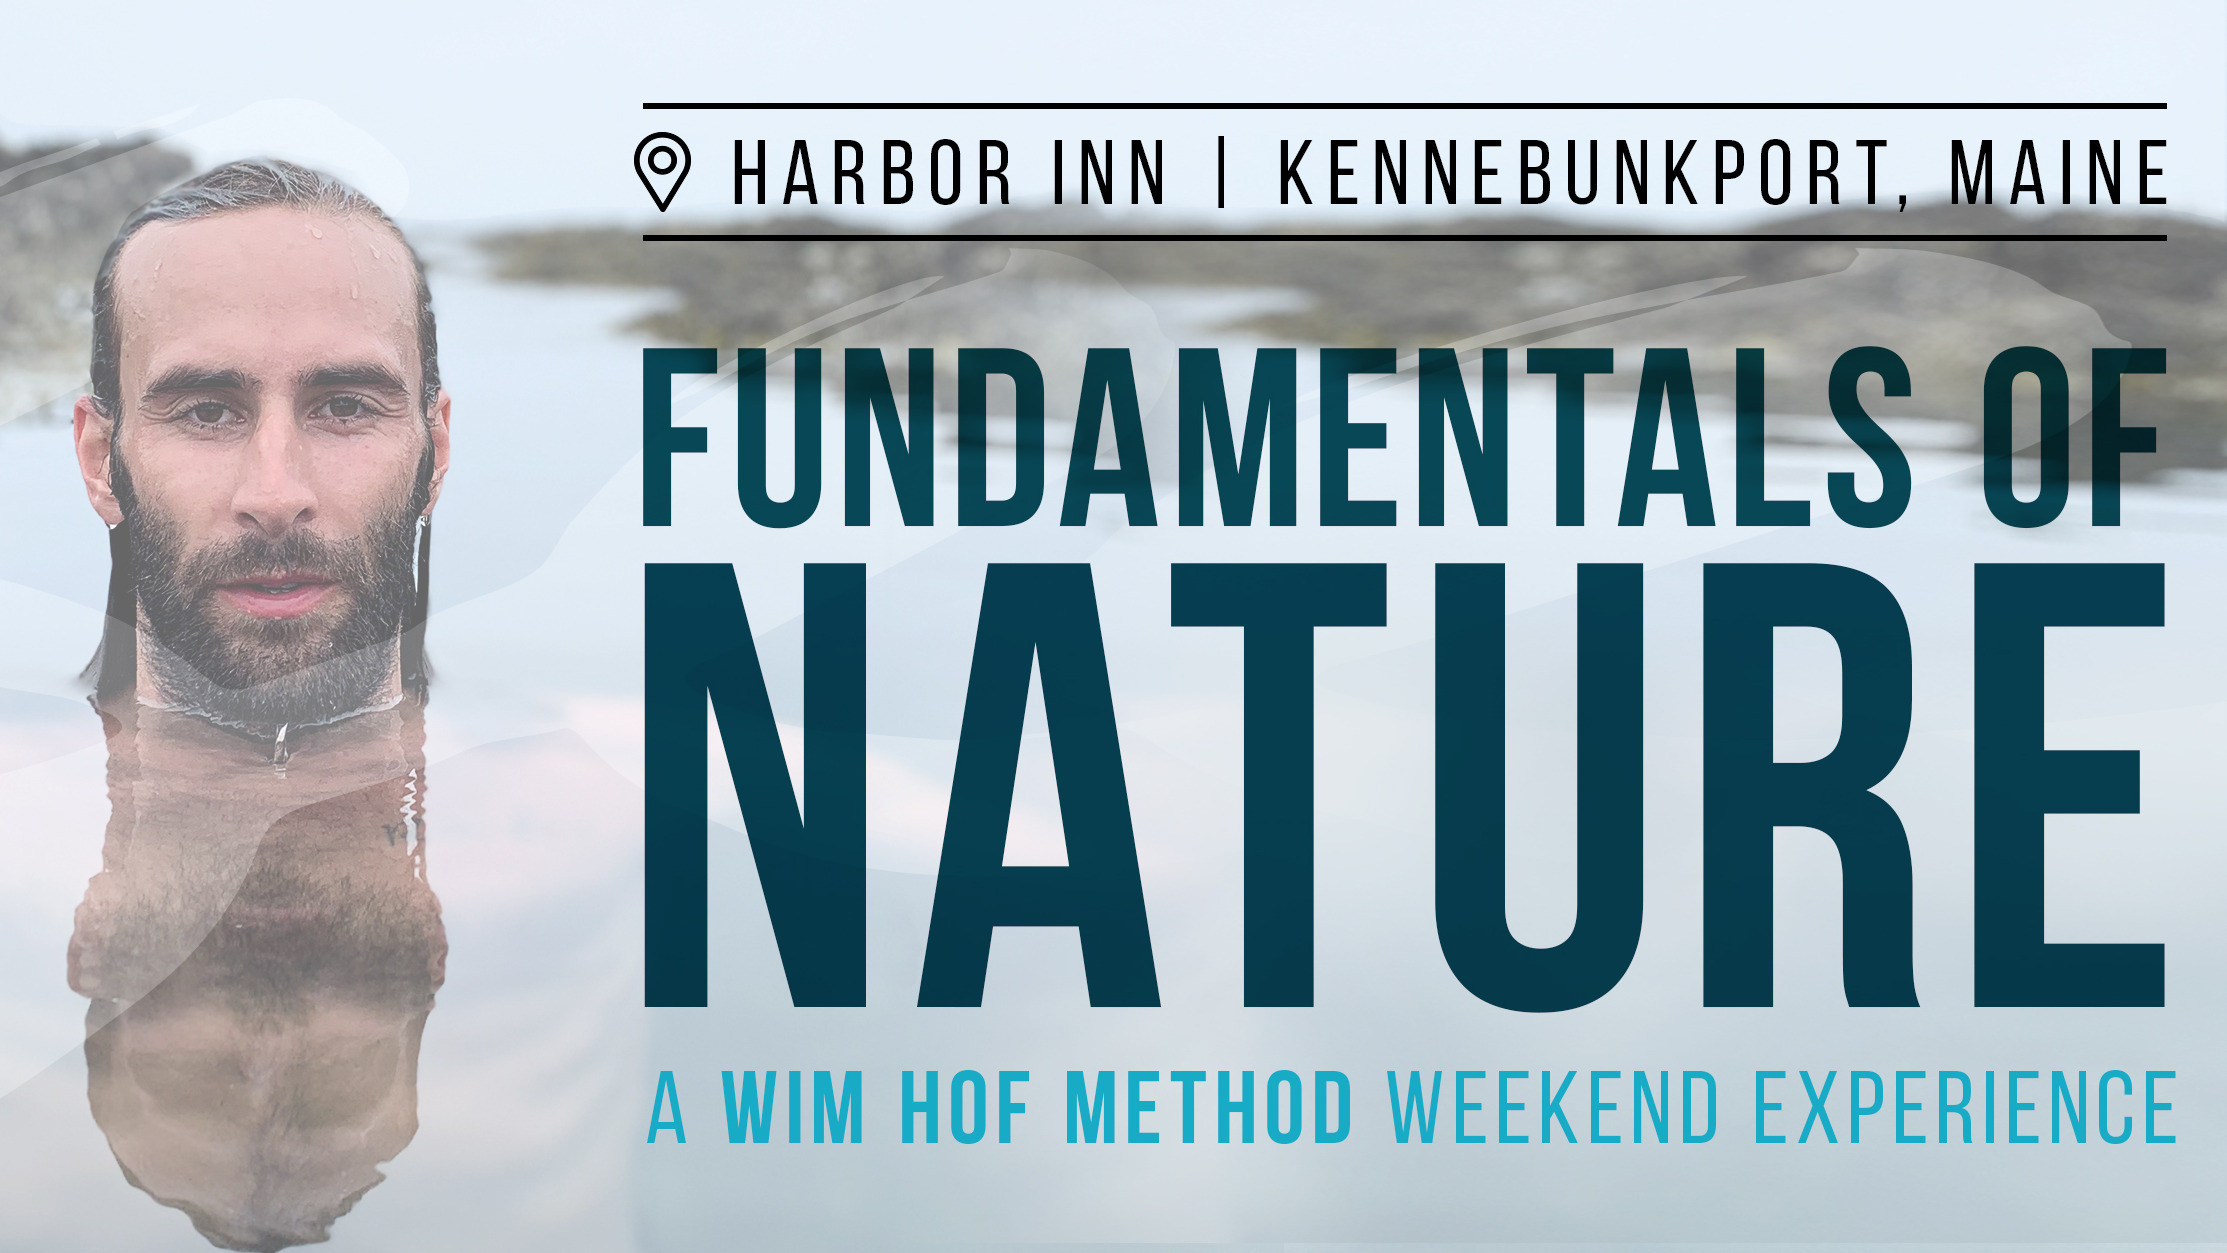 Image 1 of 1 - Experience Nature to get an impression of WHM Weekend at Kennebunkport